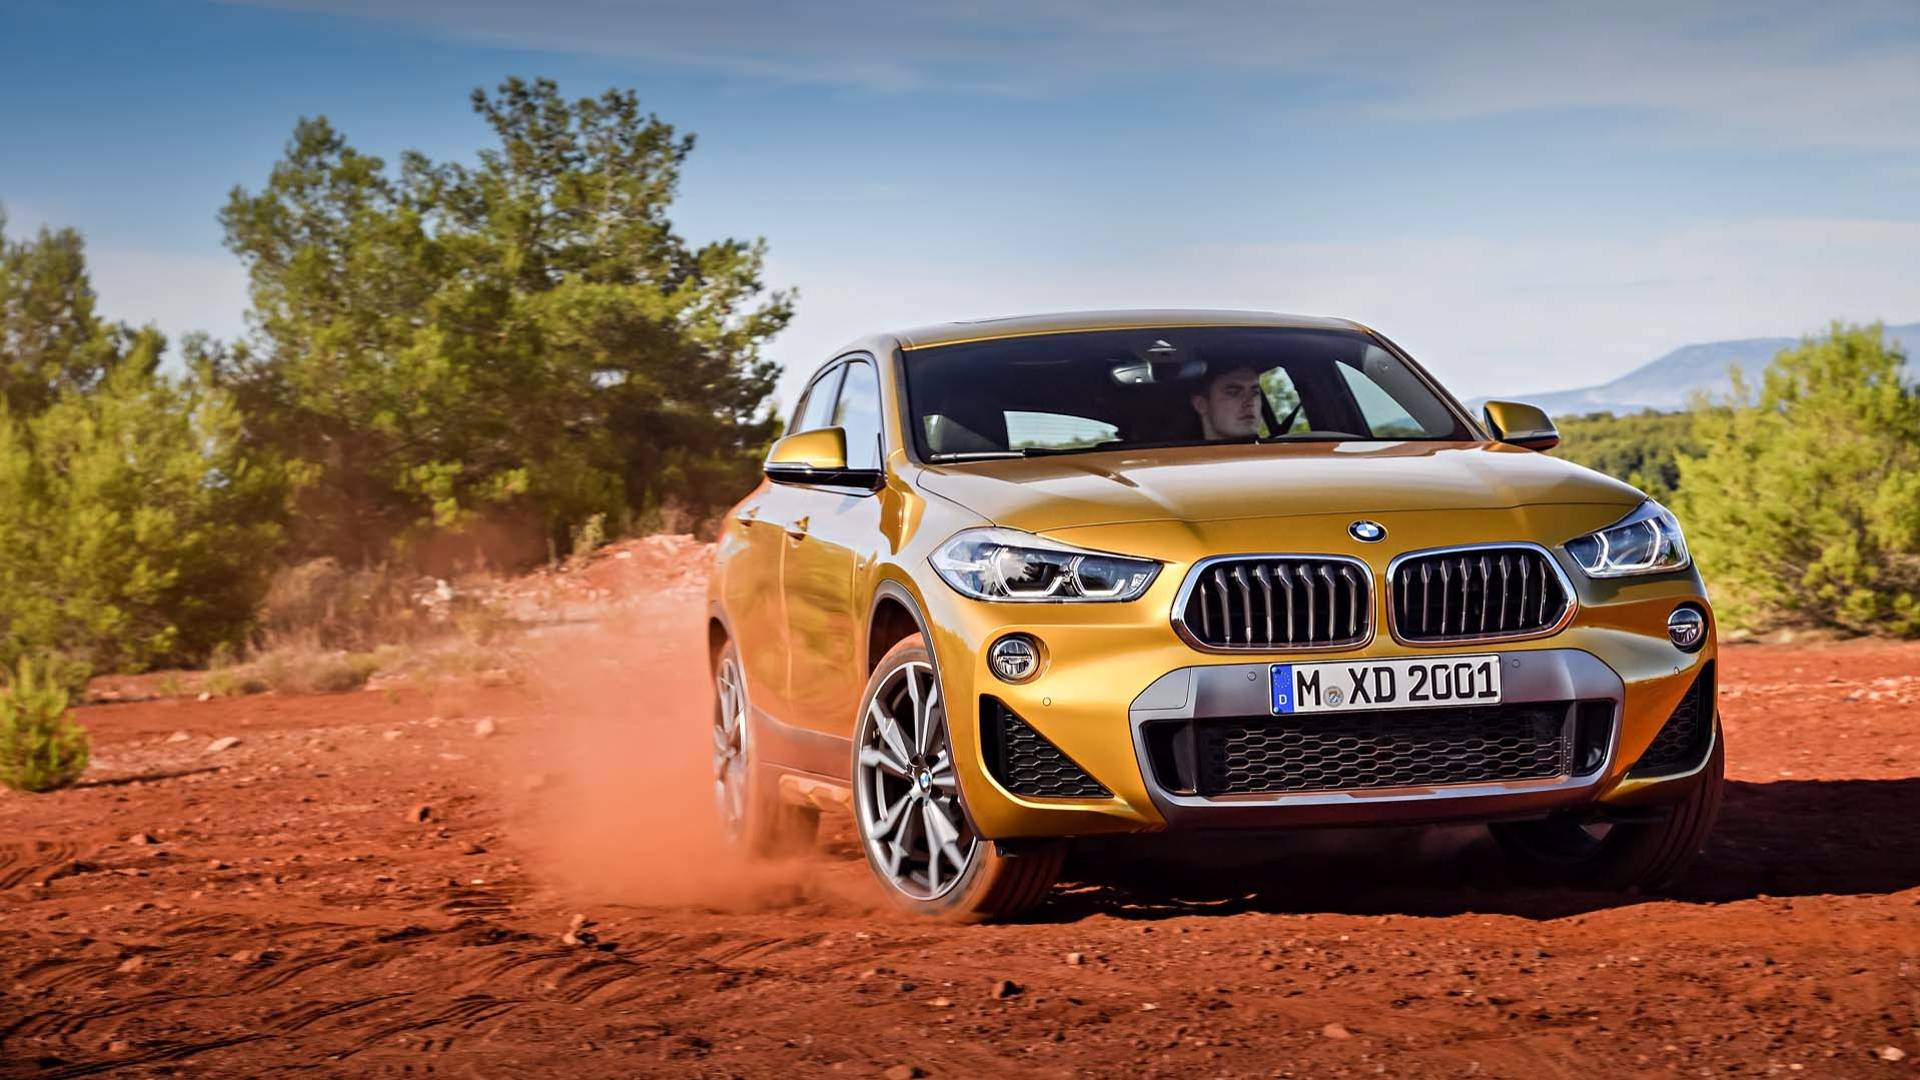 Bmw Convertible Best Of Bmw X2 Vs Bmw X1 See the Changes Side by Side